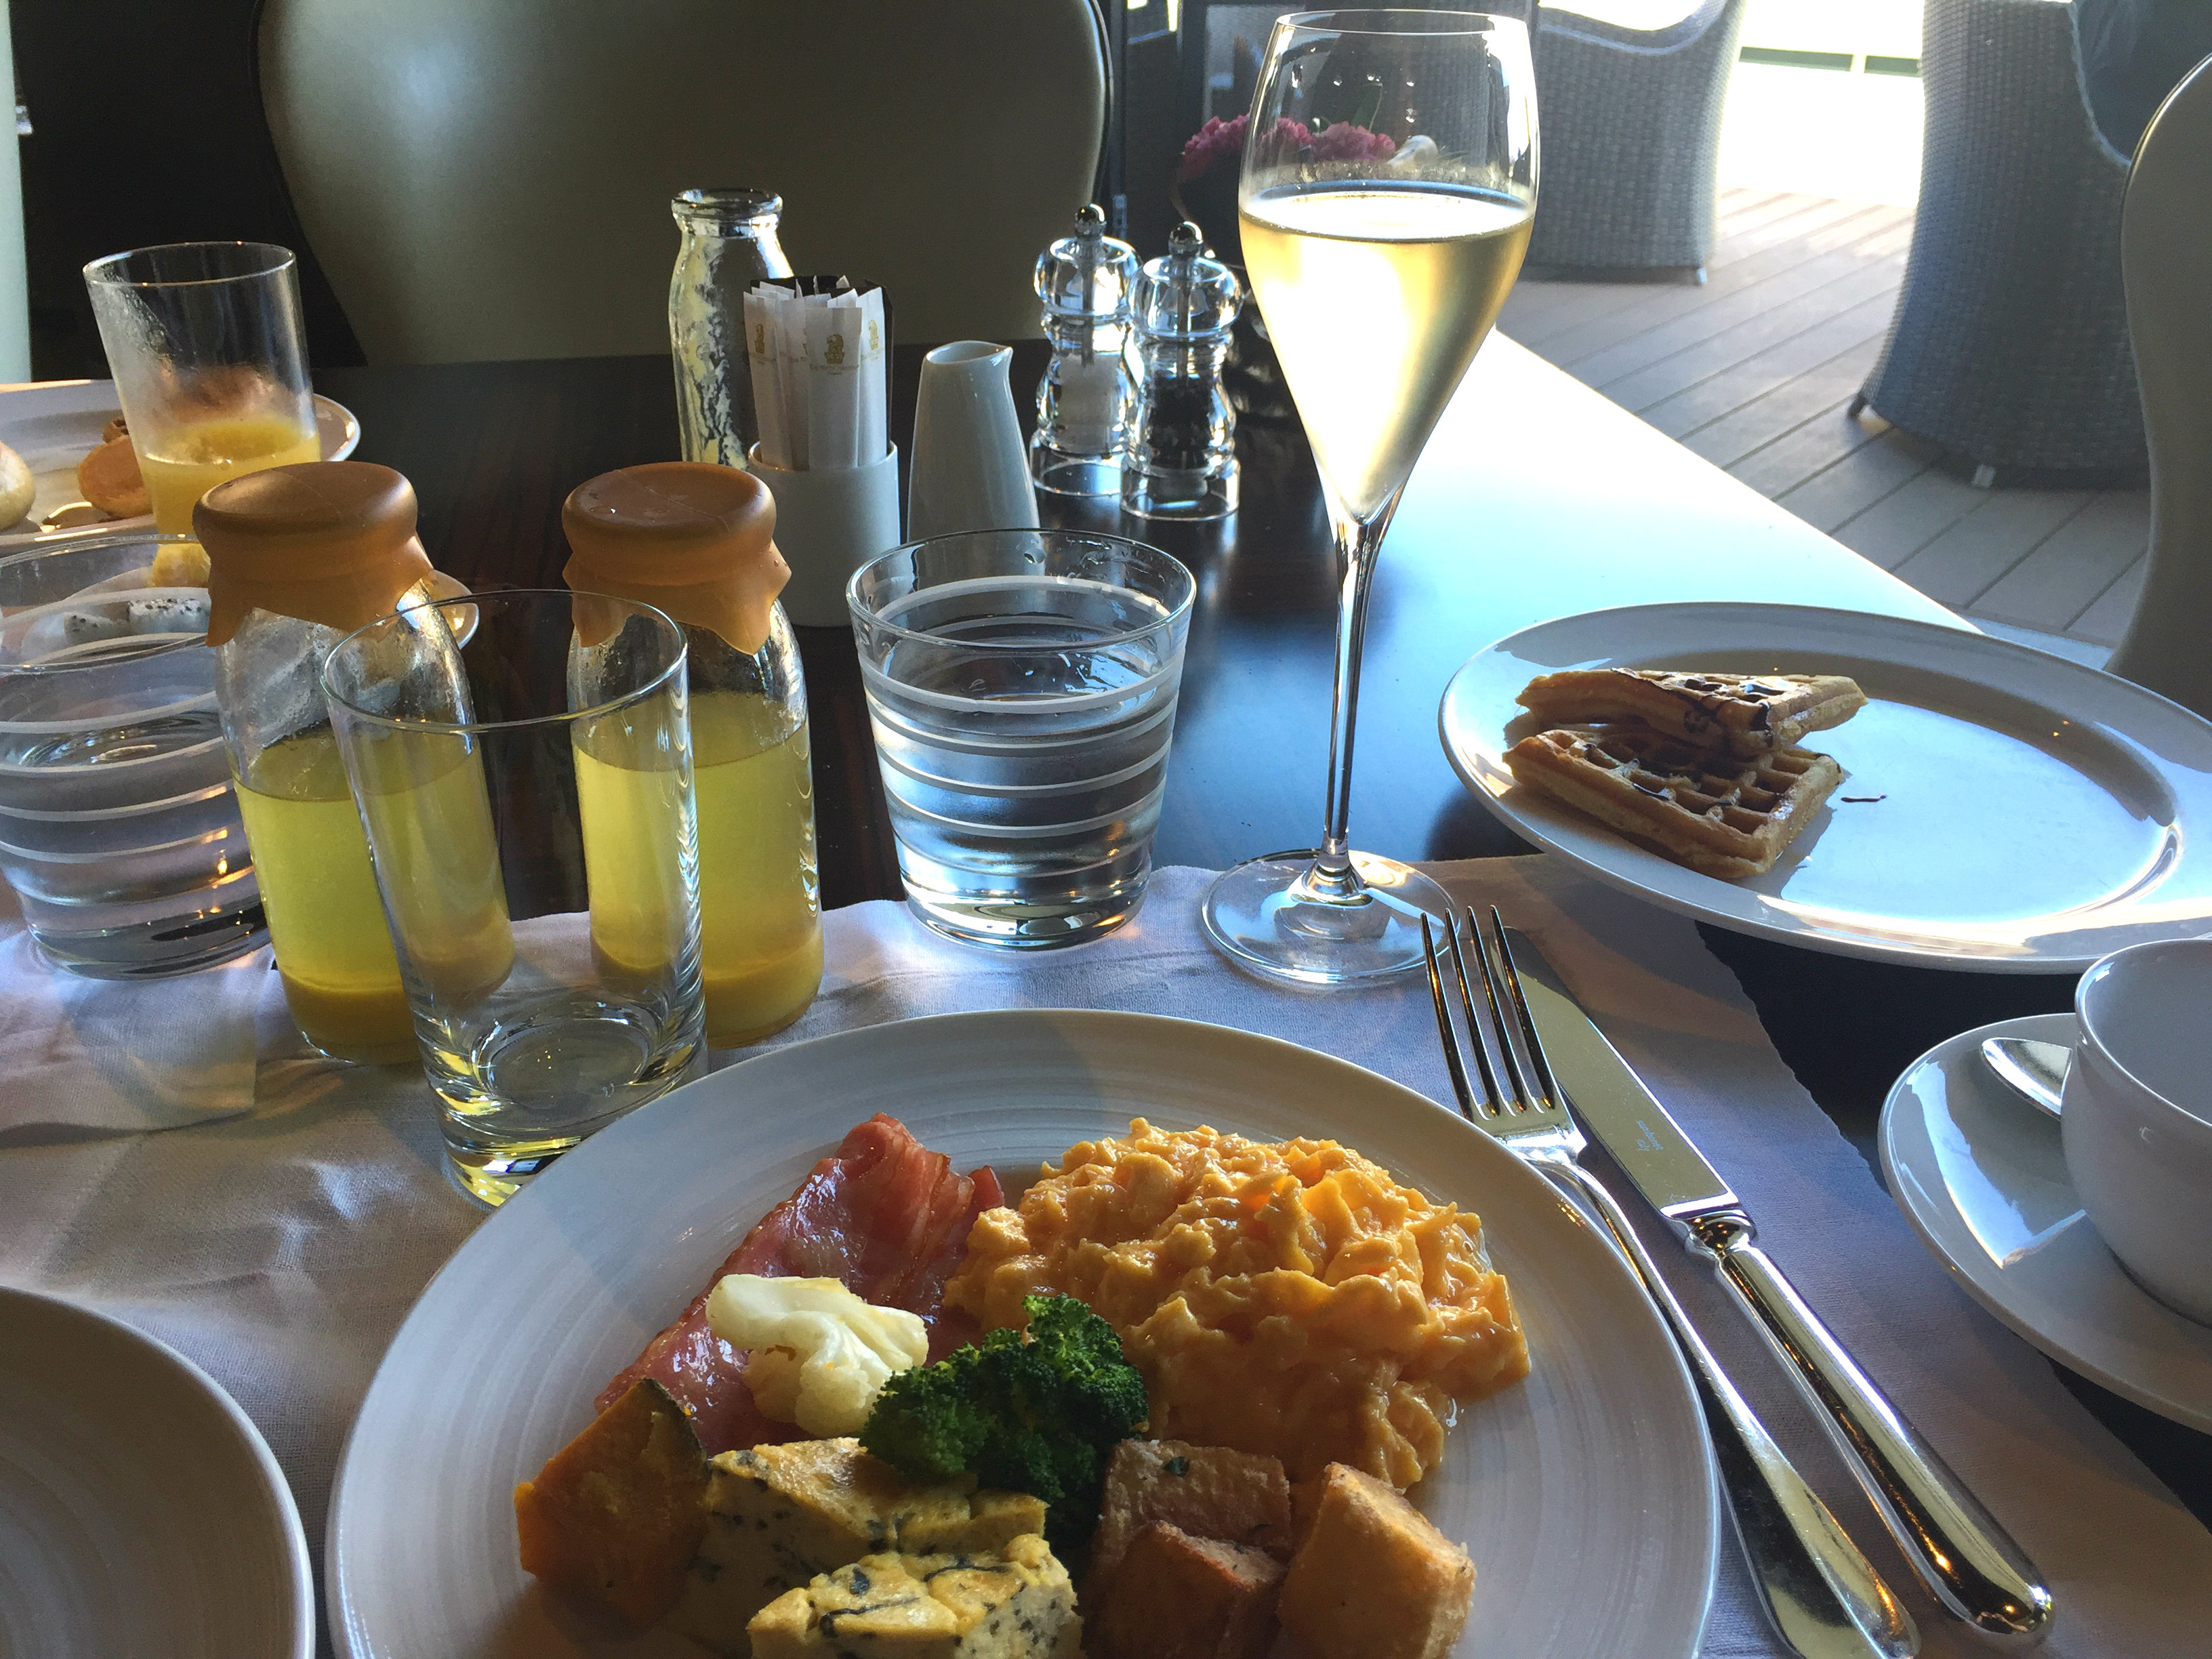 ritz-carlton okinawa breakfast